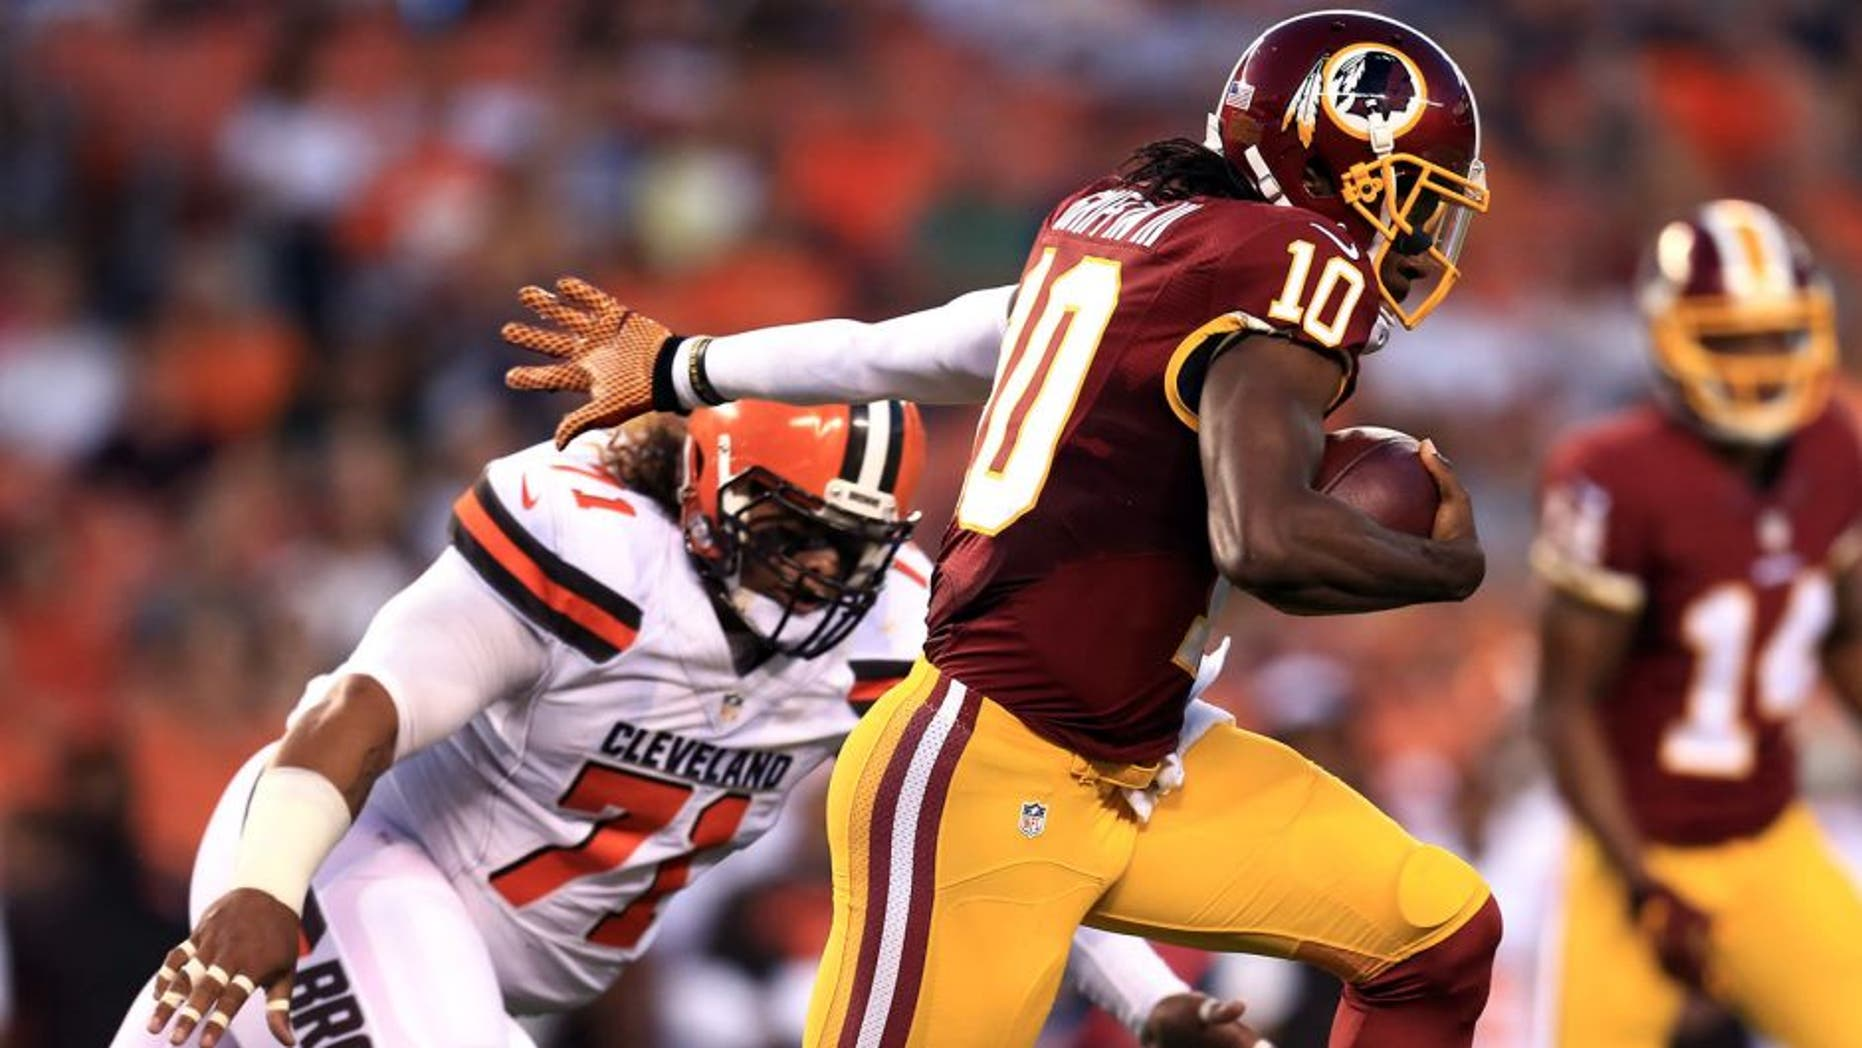 Aug 13, 2015; Cleveland, OH, USA; Washington Redskins quarterback Robert Griffin III (10) runs the ball during the first quarter of preseason NFL football game against the Cleveland Browns at FirstEnergy Stadium. Mandatory Credit: Andrew Weber-USA TODAY Sports